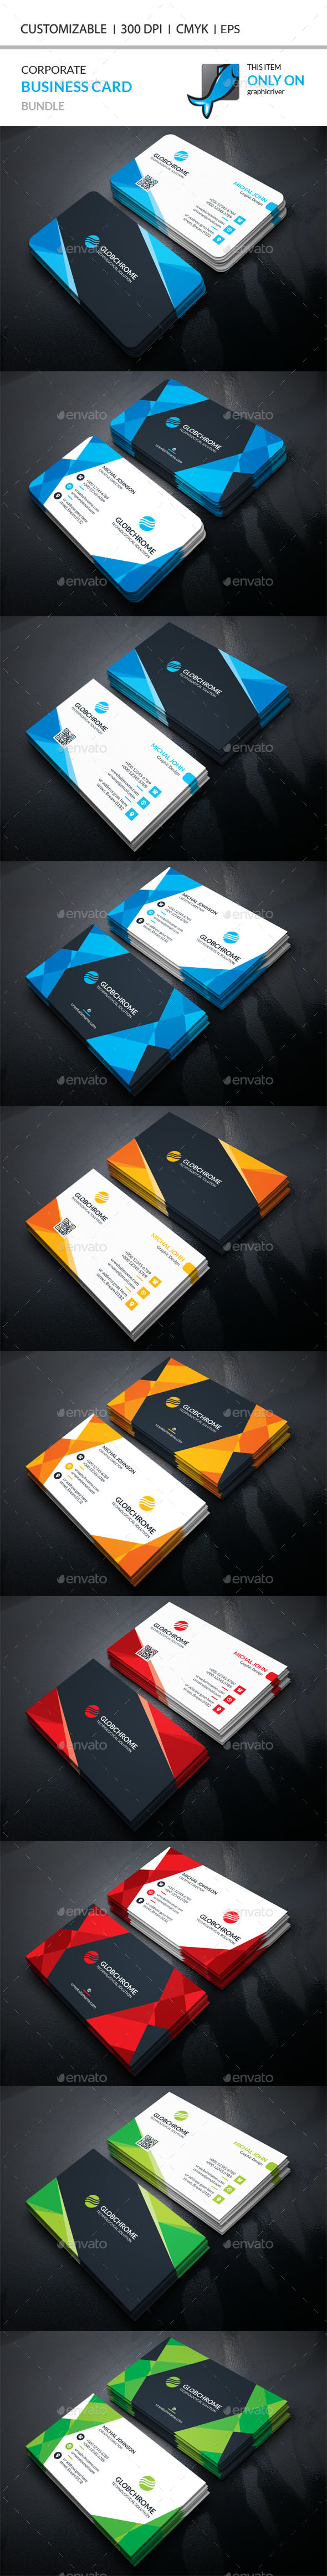 2 corporate business card templates vector eps ai illustrator 2 corporate business card templates vector eps ai illustrator download here https reheart Gallery